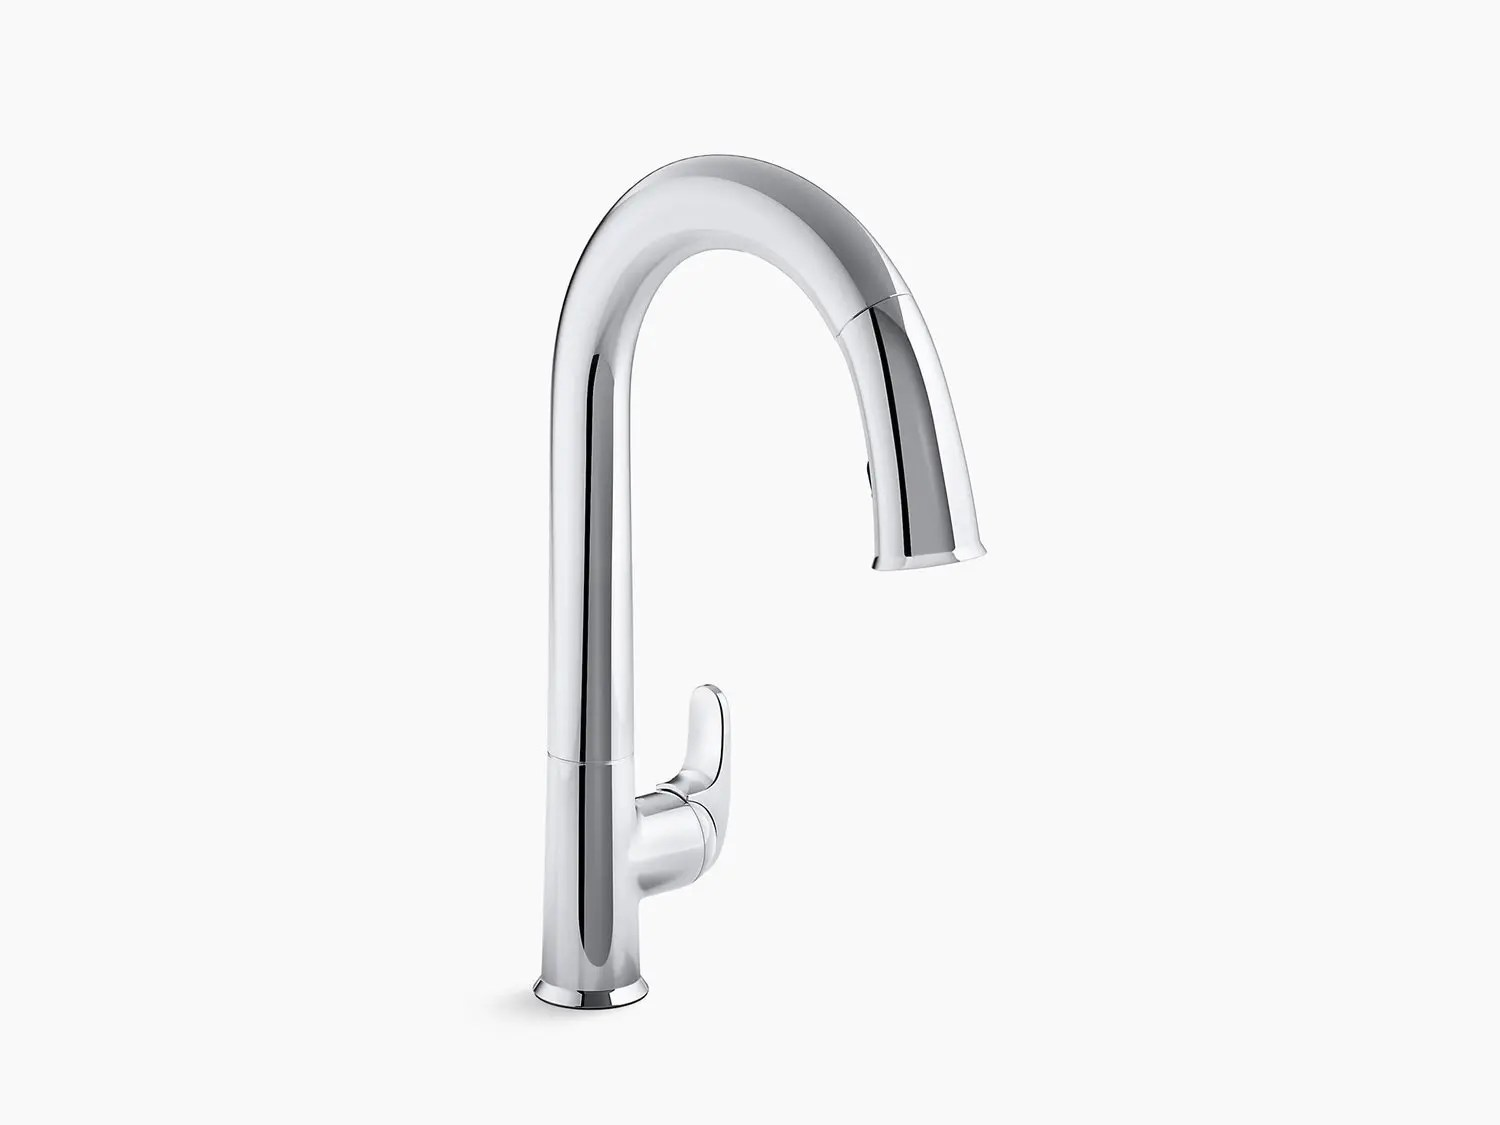 matte black touchless kitchen faucet with 15 1 2 pull down spout docknetik magnetic docking system and a 2 function sprayhead featuring the new